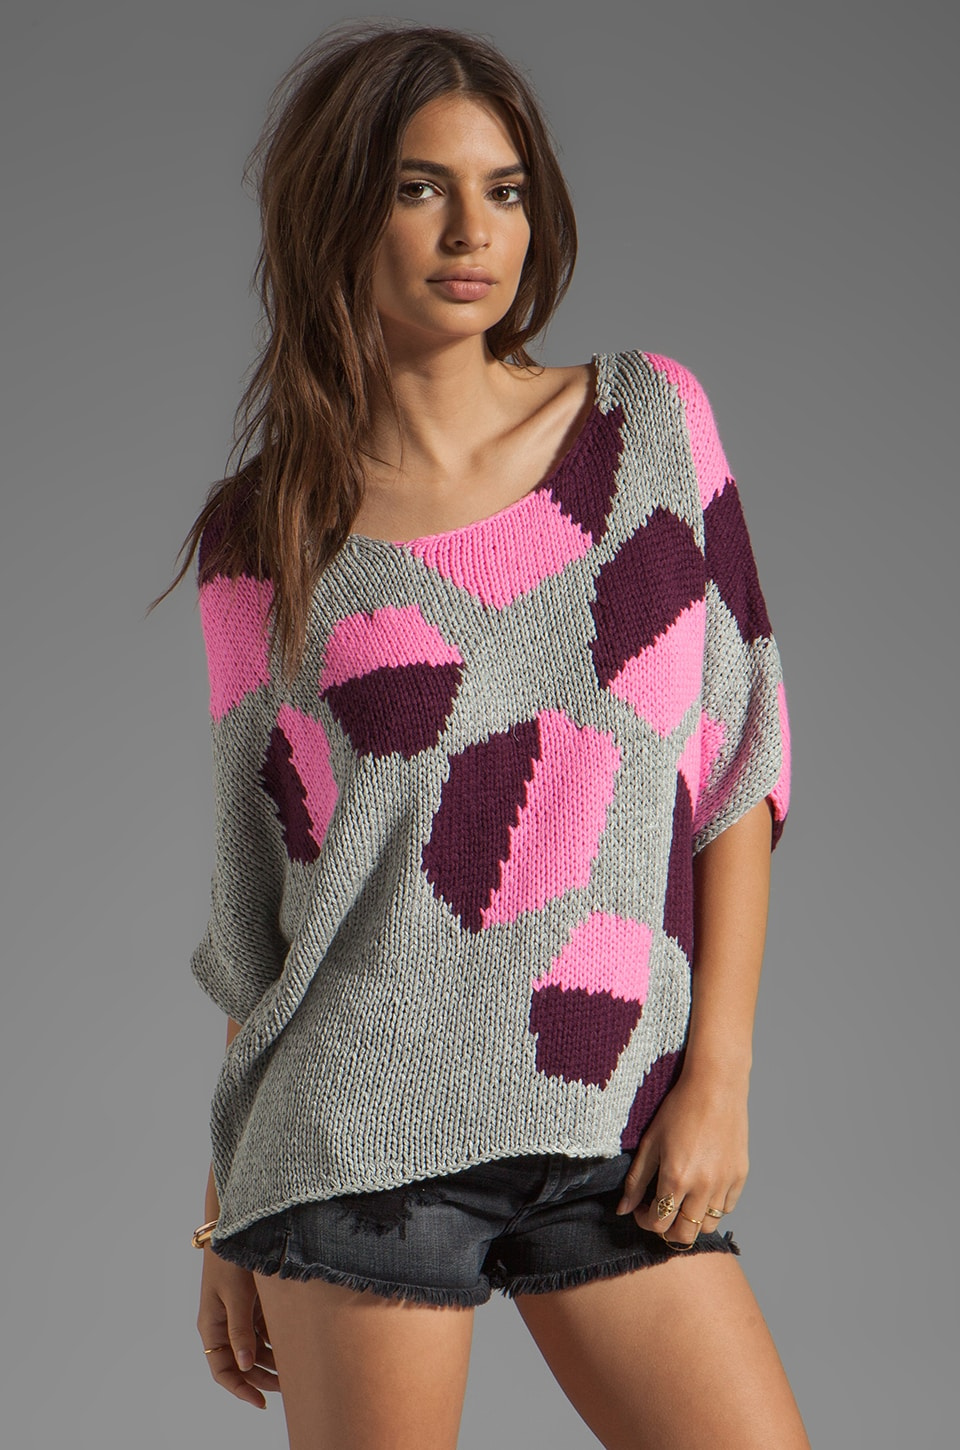 Diane von Furstenberg Zita Intarsia Sweater in Hexagon Halves